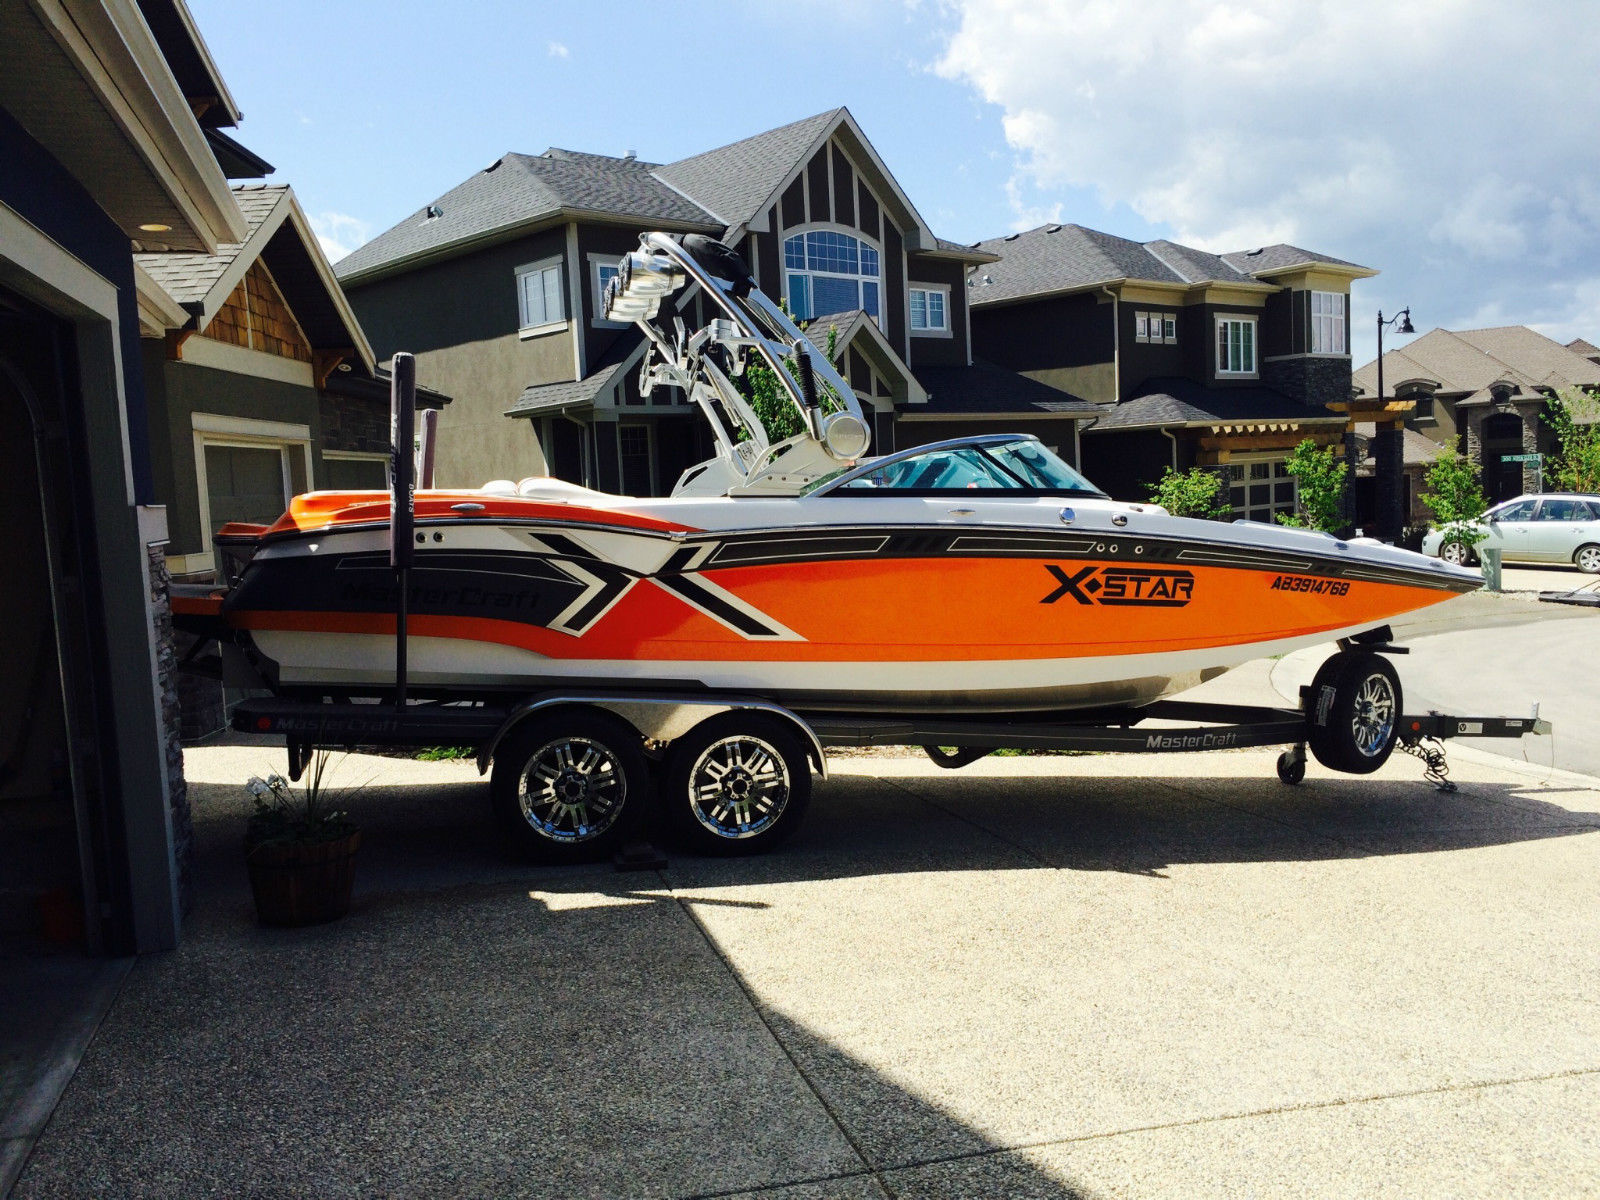 Mastercraft X Star 2013 For Sale For 85 000 Boats From